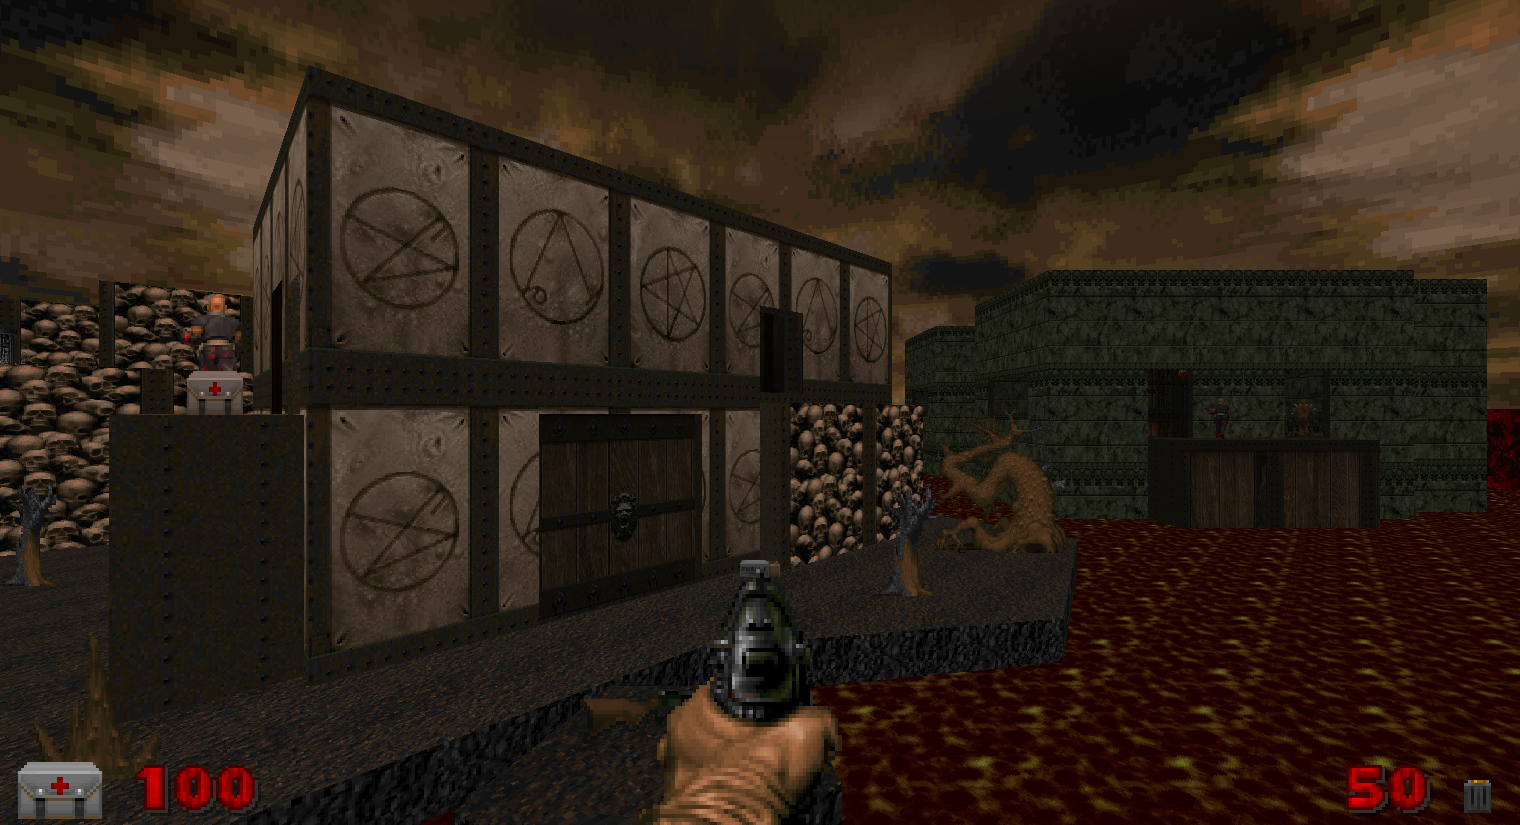 Screenshot_Doom_20200214_175950.png.697fa0d475c25b827cbc1d006b356979.png